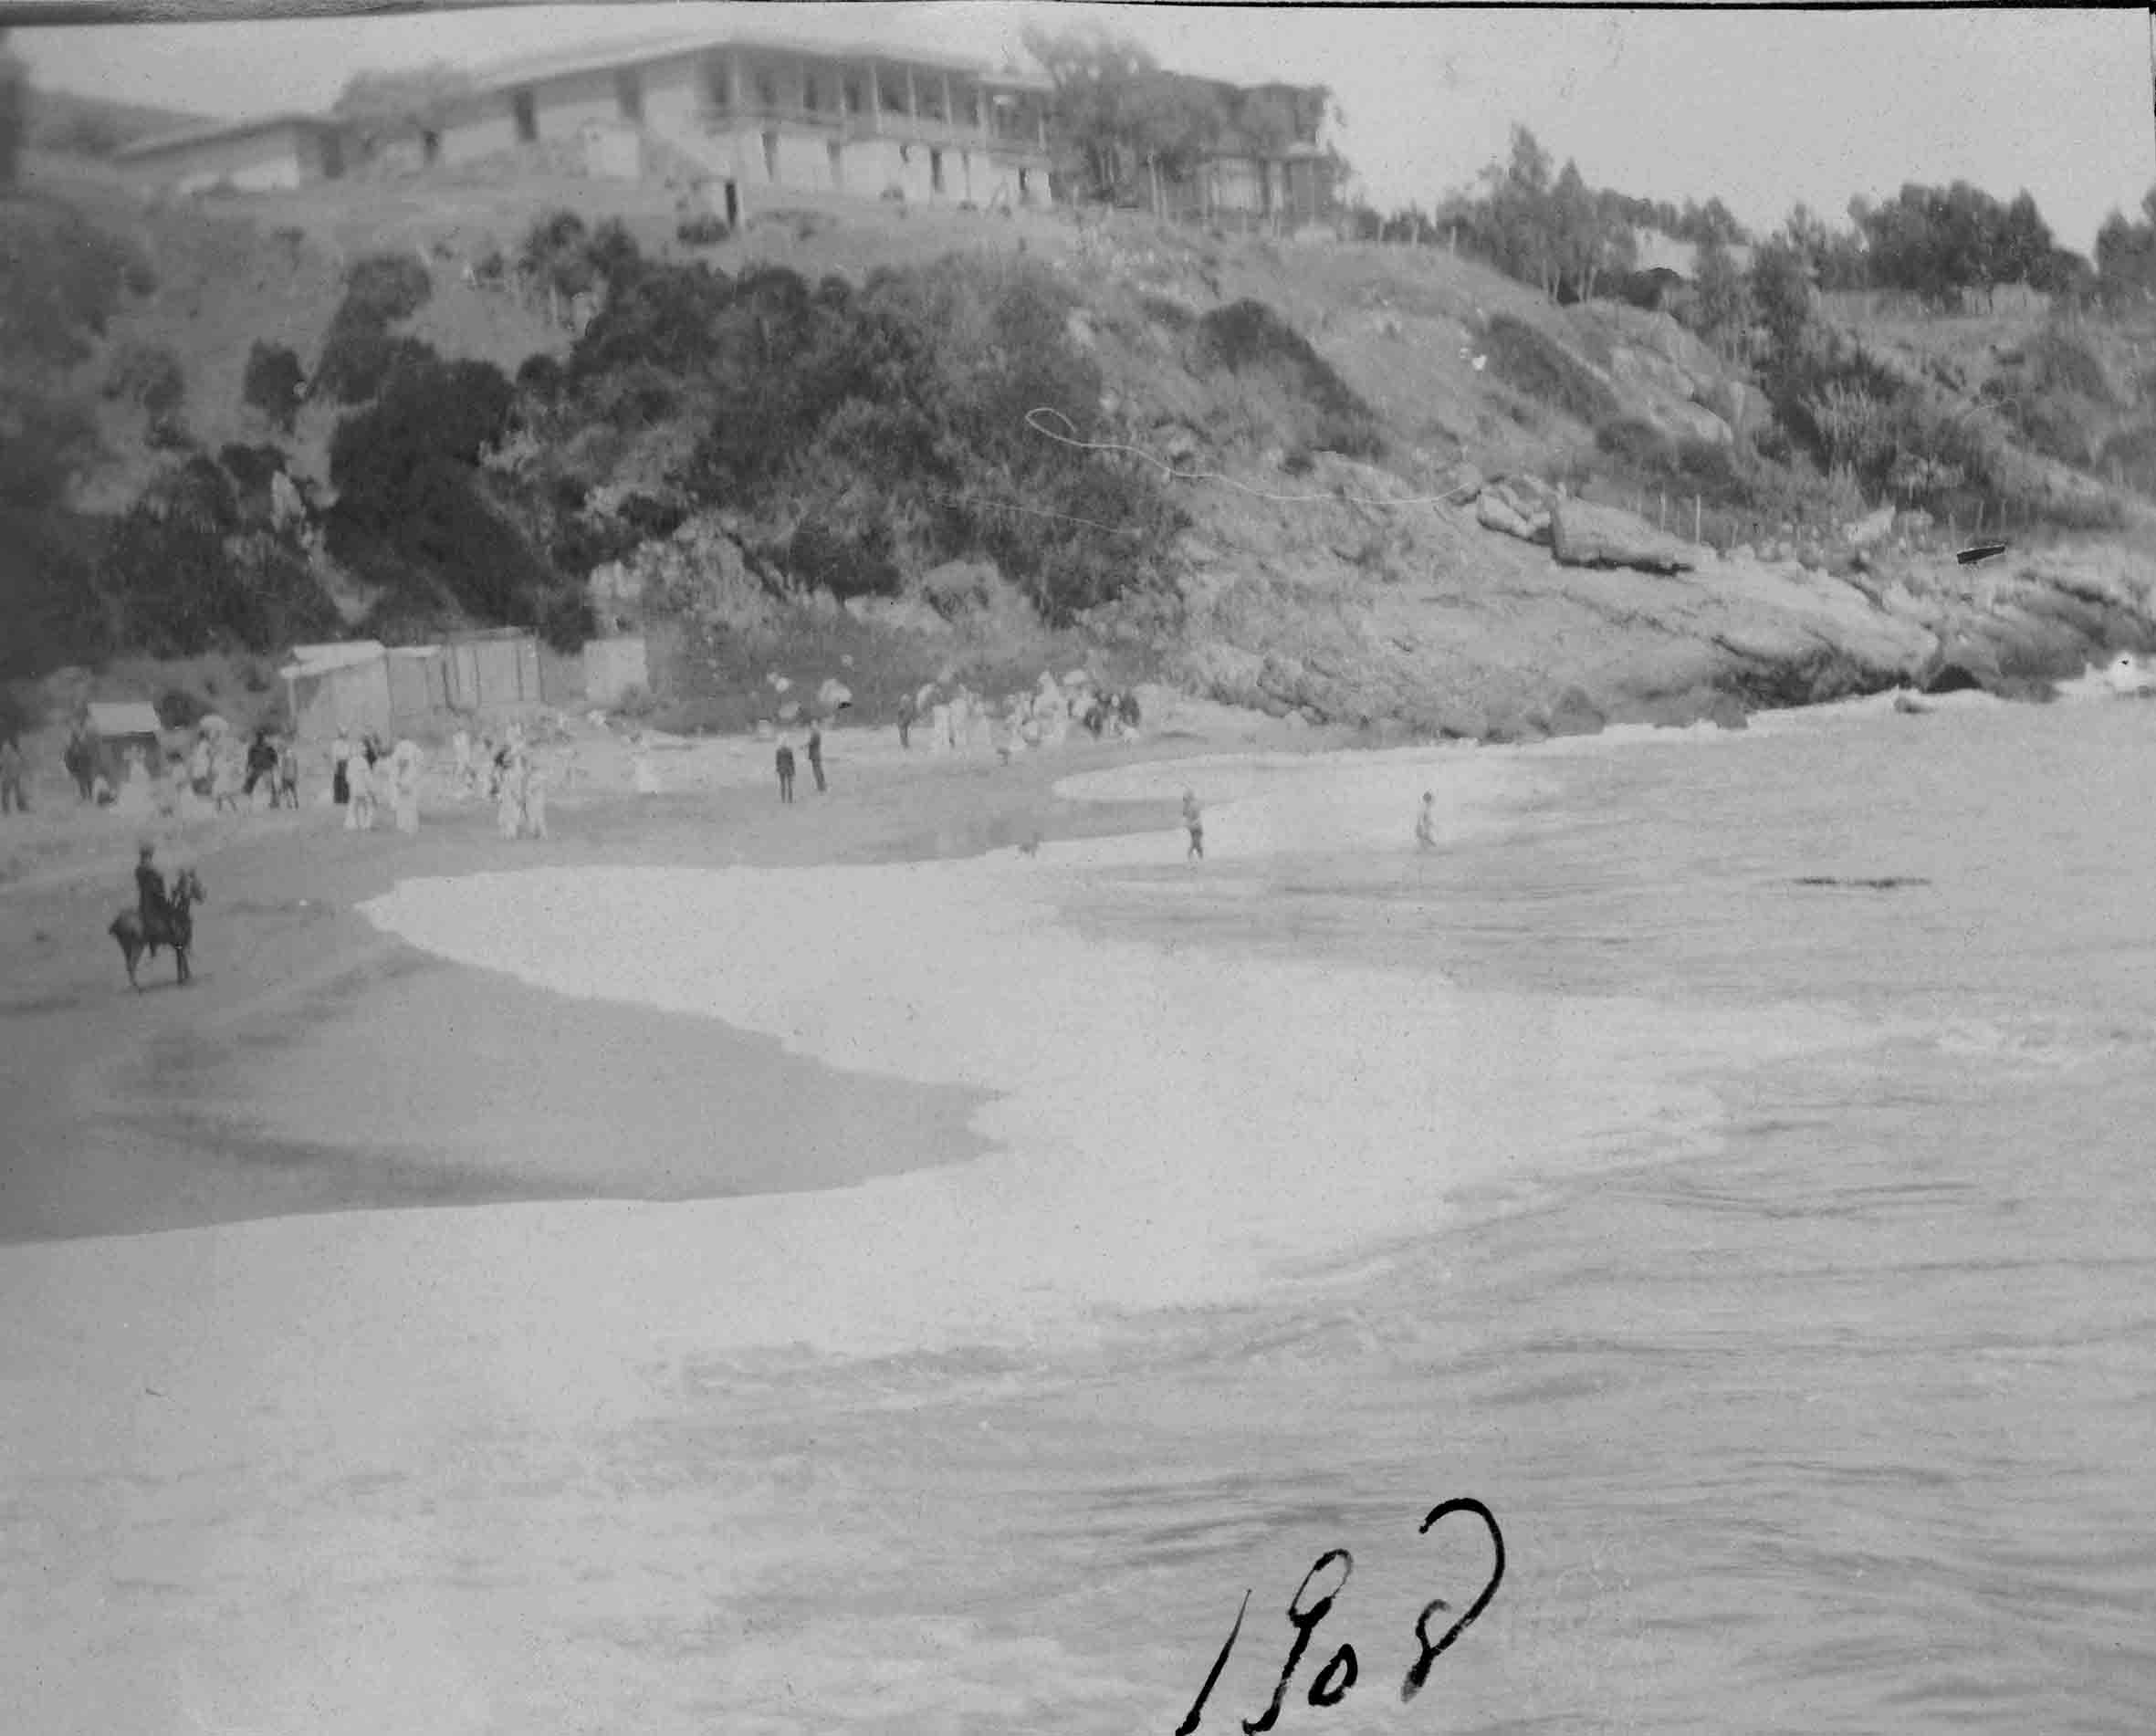 Enterreno - Fotos históricas de chile - fotos antiguas de Chile - Playa de Zapallar en 1908